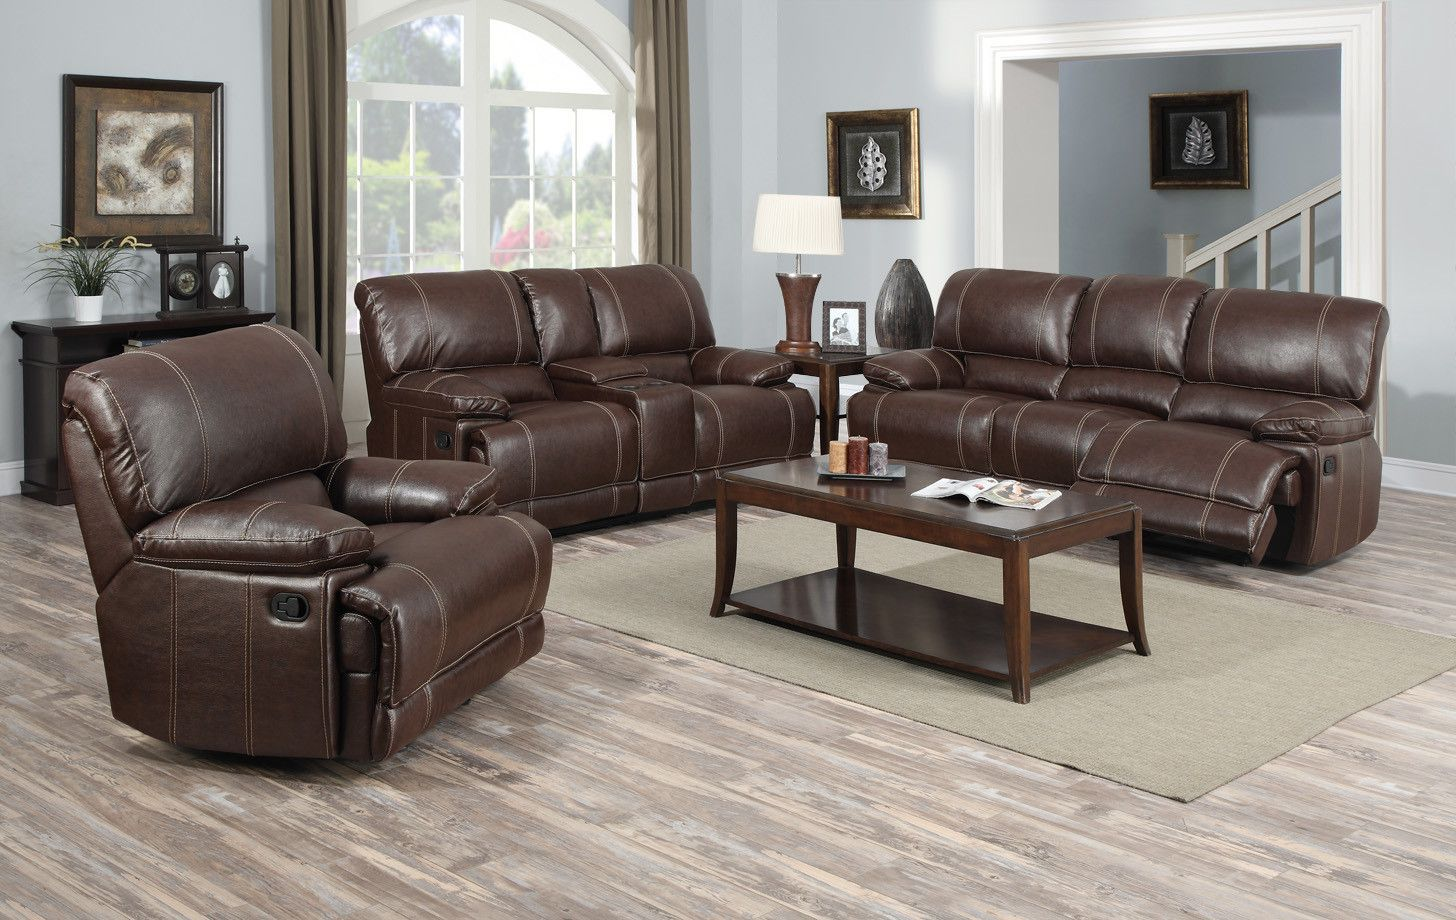 Leather Reclining Living Room Set  Room Set Room And Living Rooms Pleasing Living Rooms Sets Decorating Inspiration